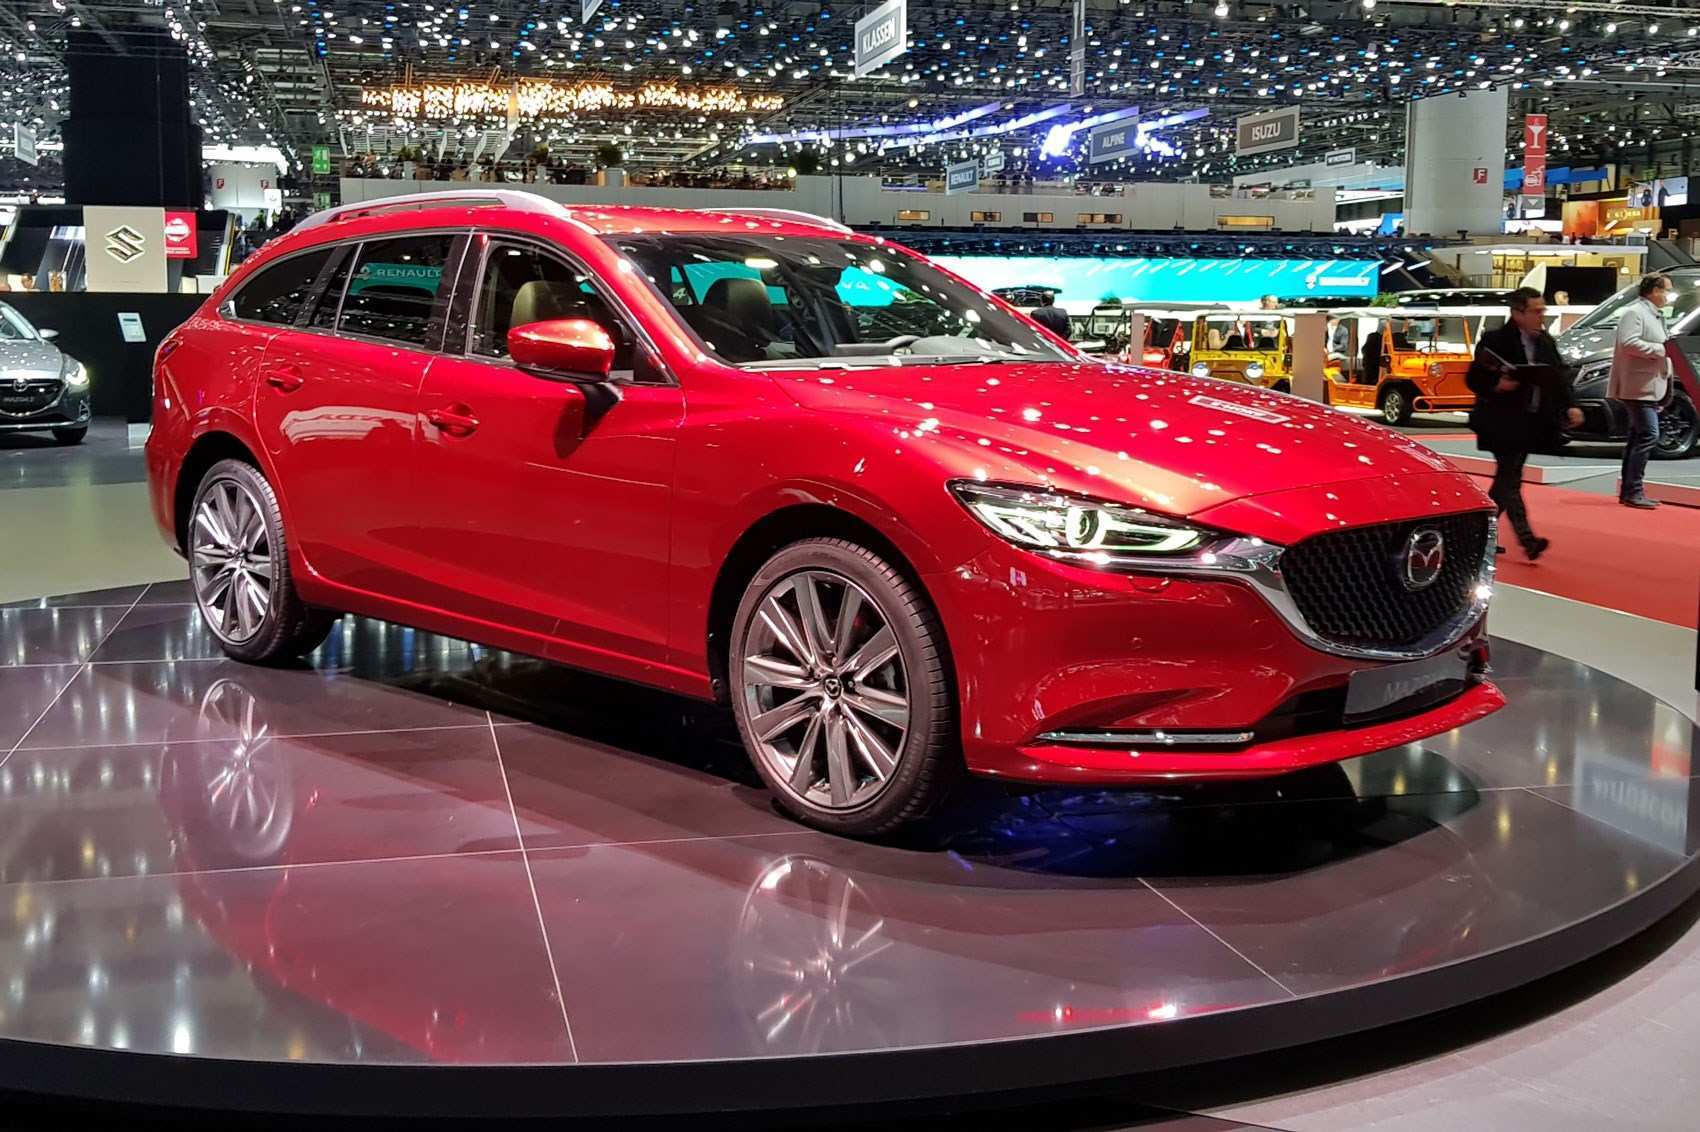 39 Concept of New 2019 Mazda 6 Spy Shots Redesign Price And Review Pictures with New 2019 Mazda 6 Spy Shots Redesign Price And Review